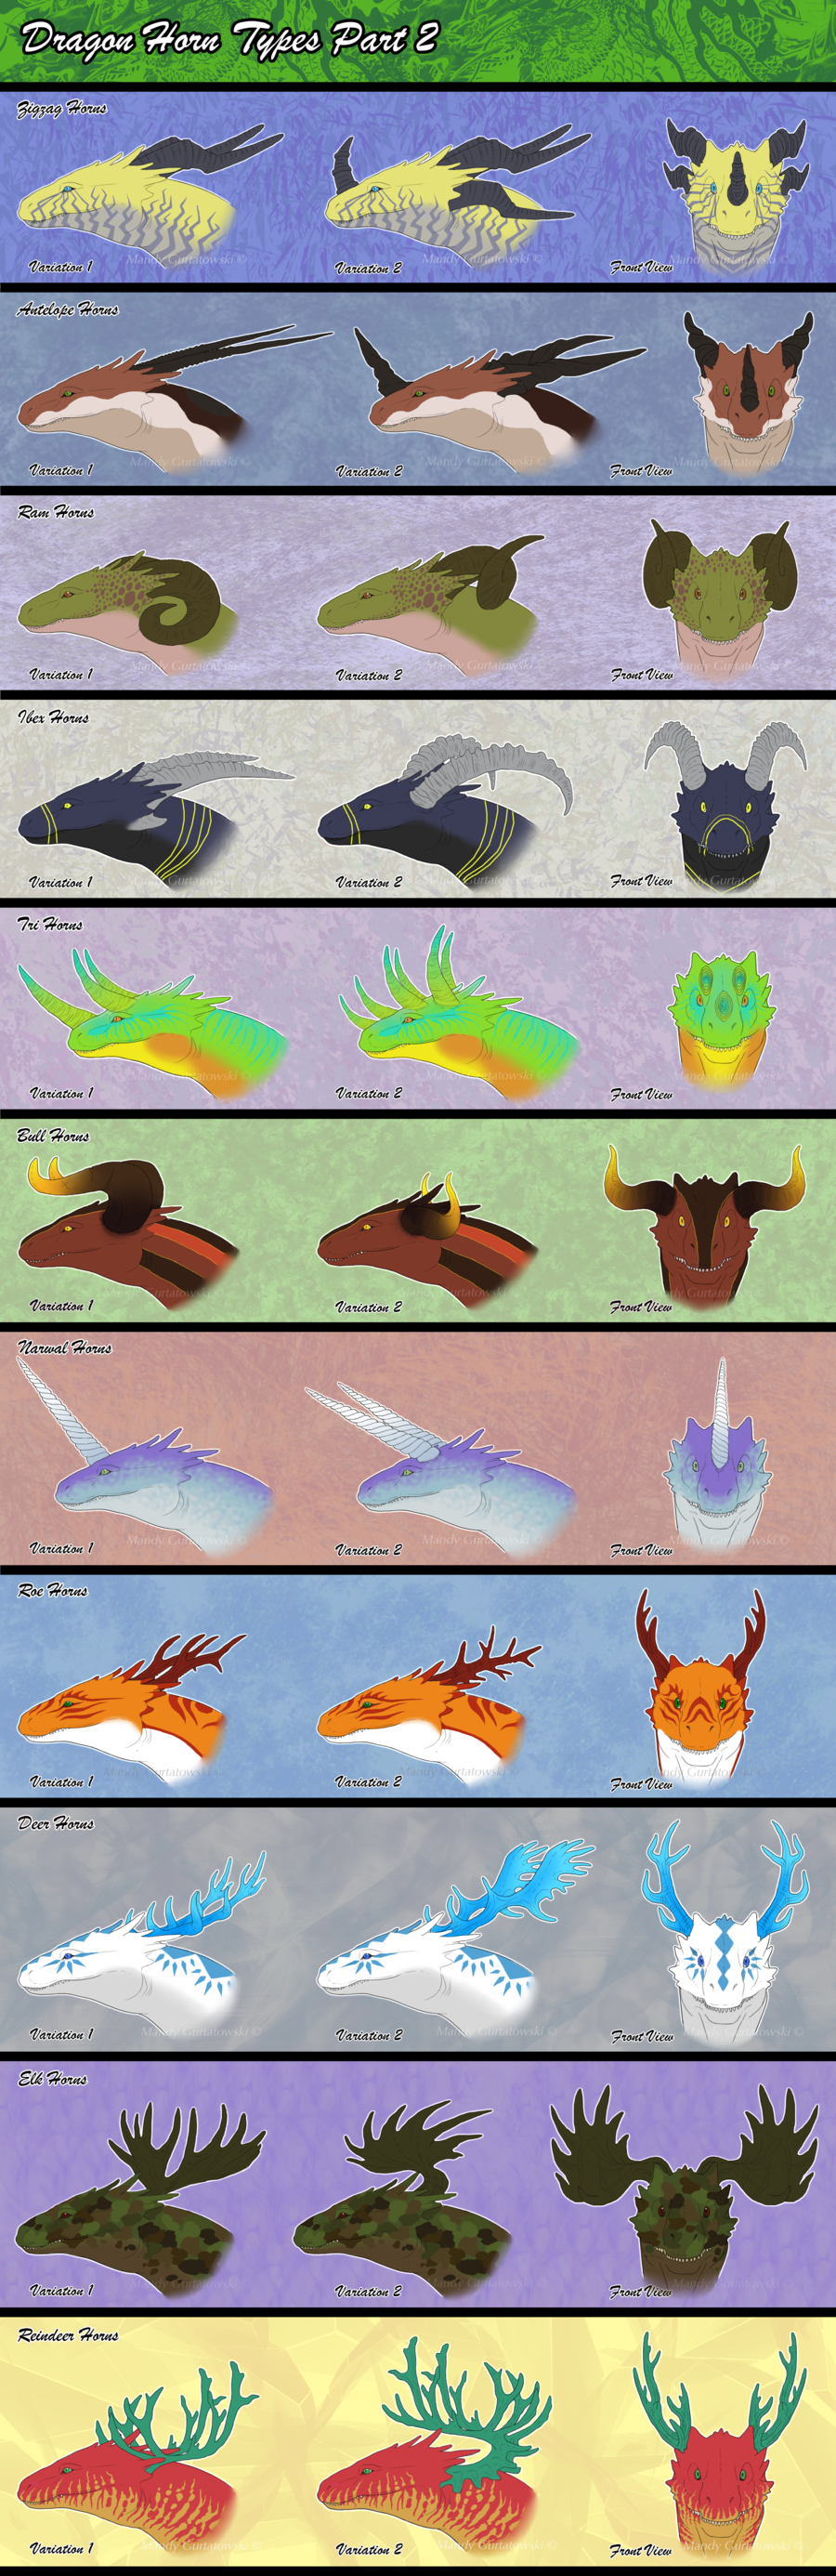 Dragon Horn Types Part 2 By Araless